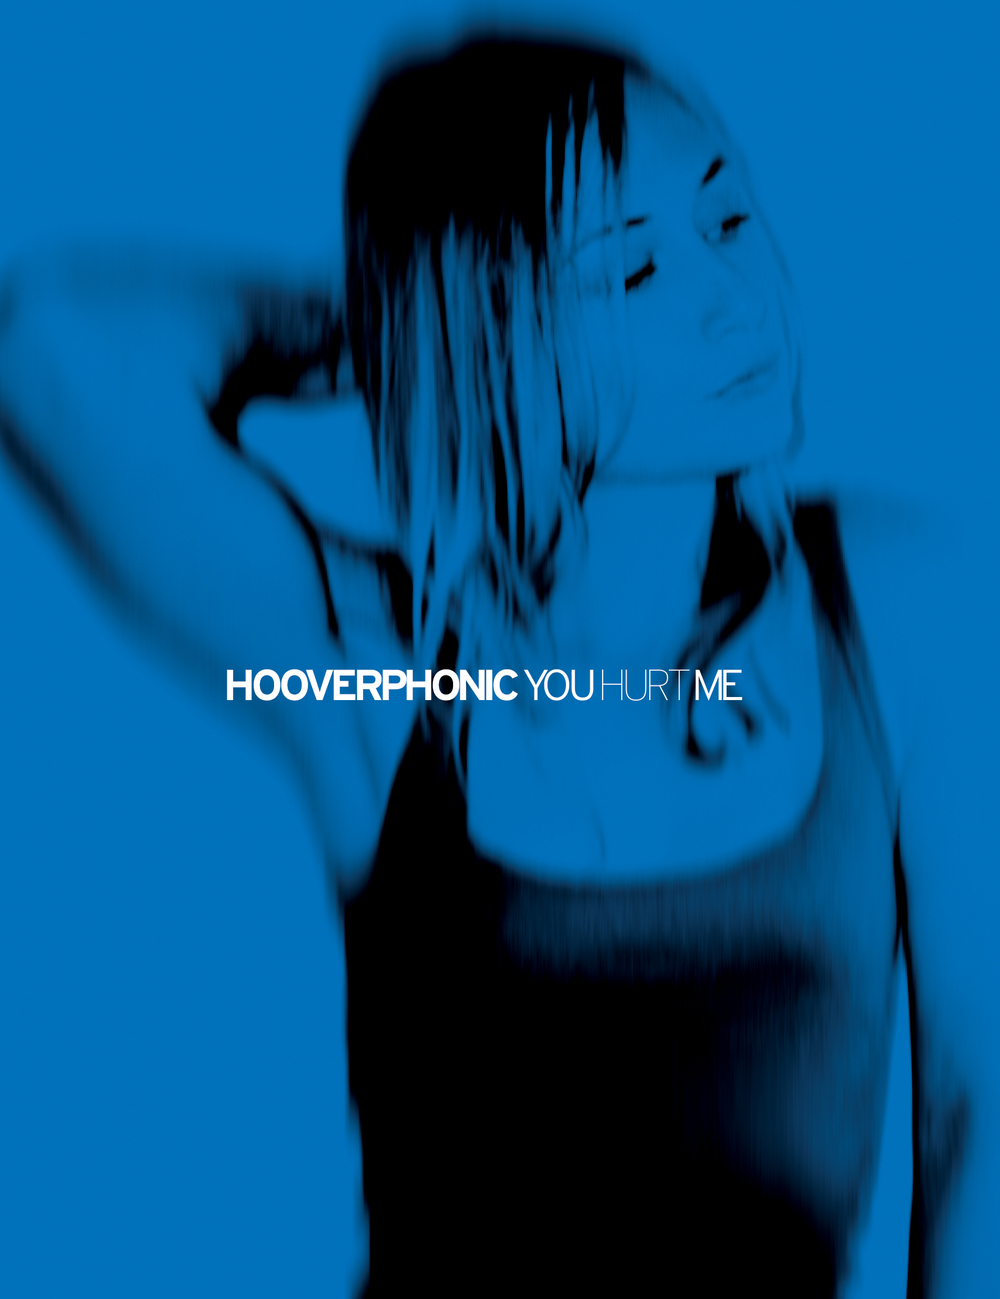 Hooverphonic // You Hurt Me // 2005